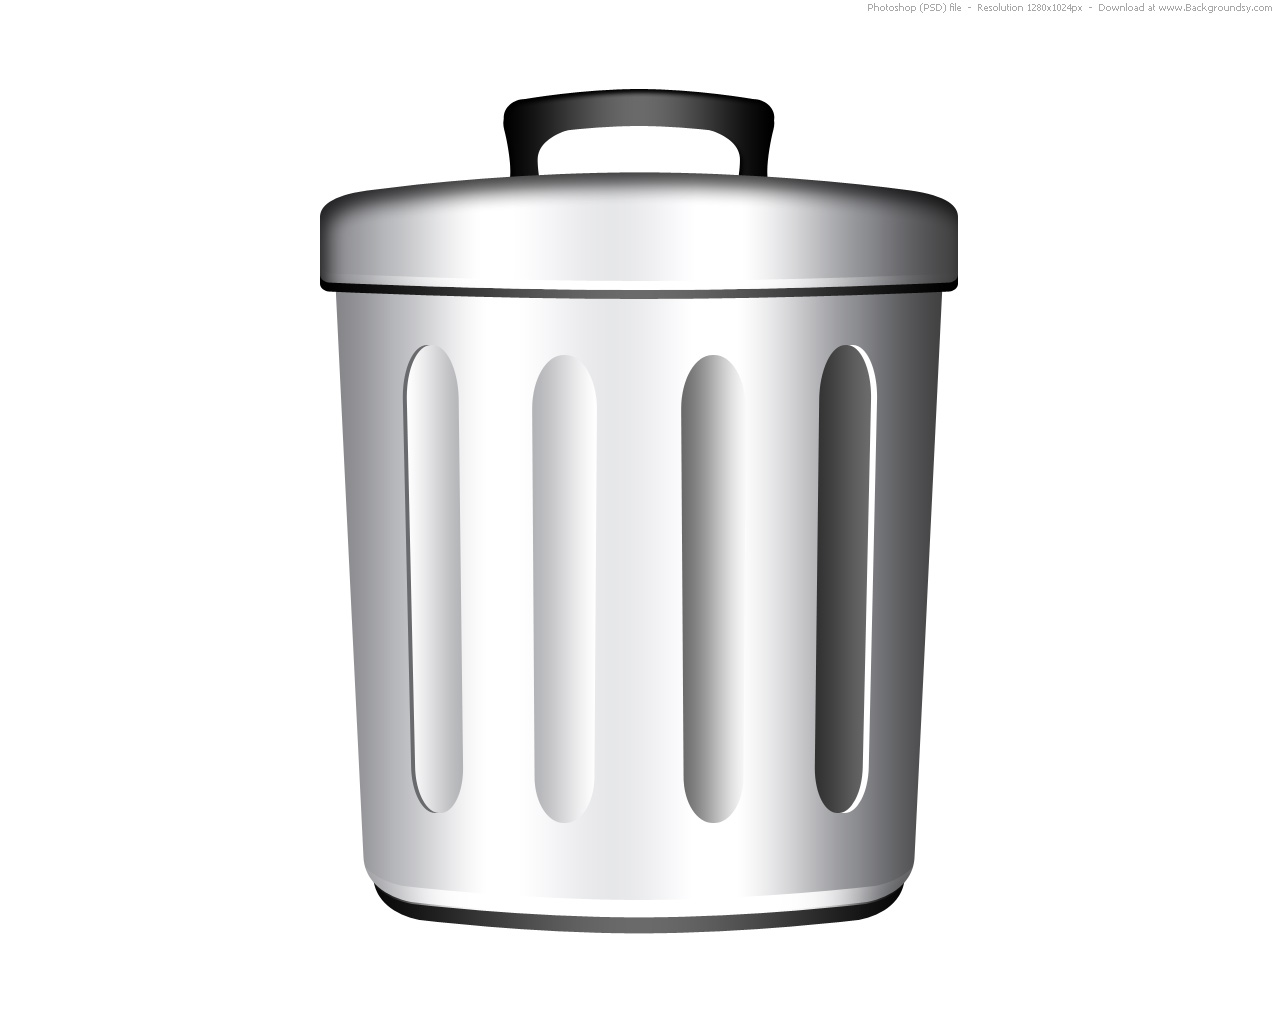 Free Transparent Trash Can, Download Free Clip Art, Free ... royalty free stock